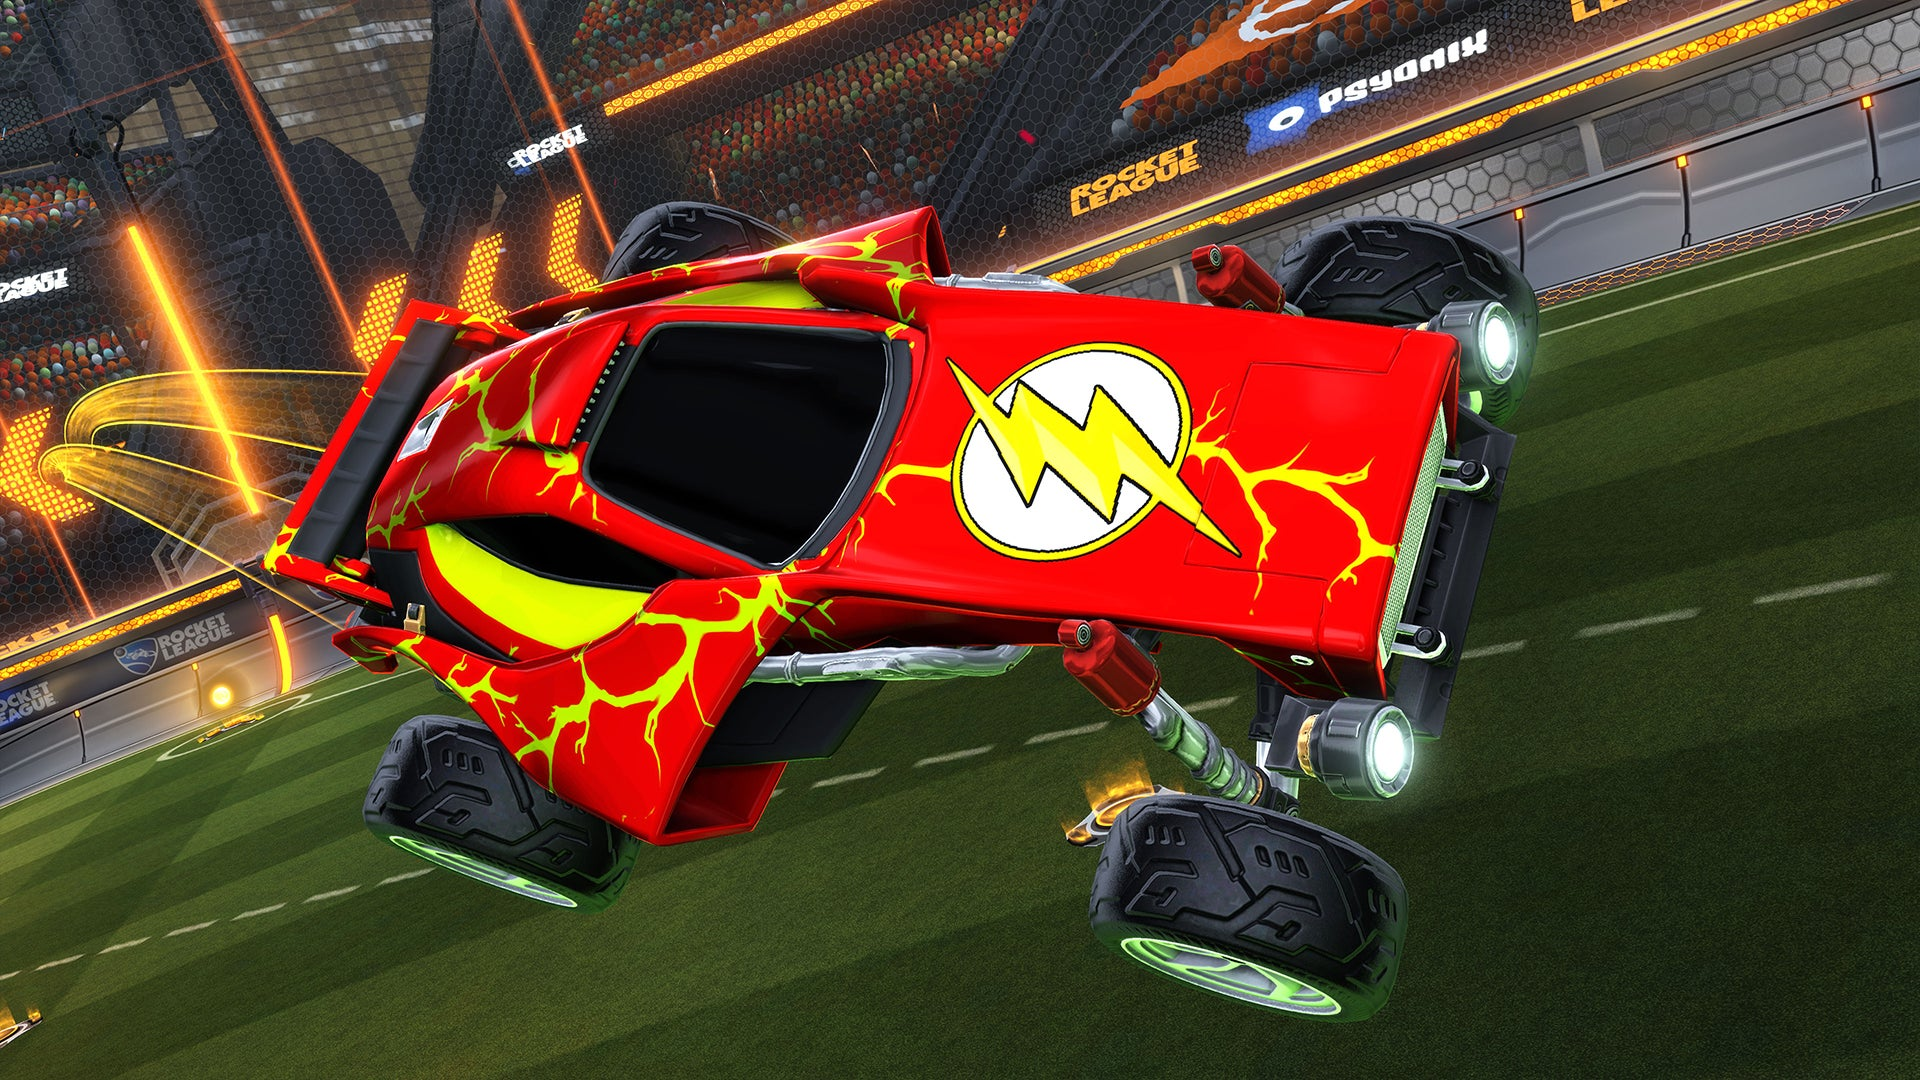 DC Super Heroes DLC Pack Rocket League Official Site